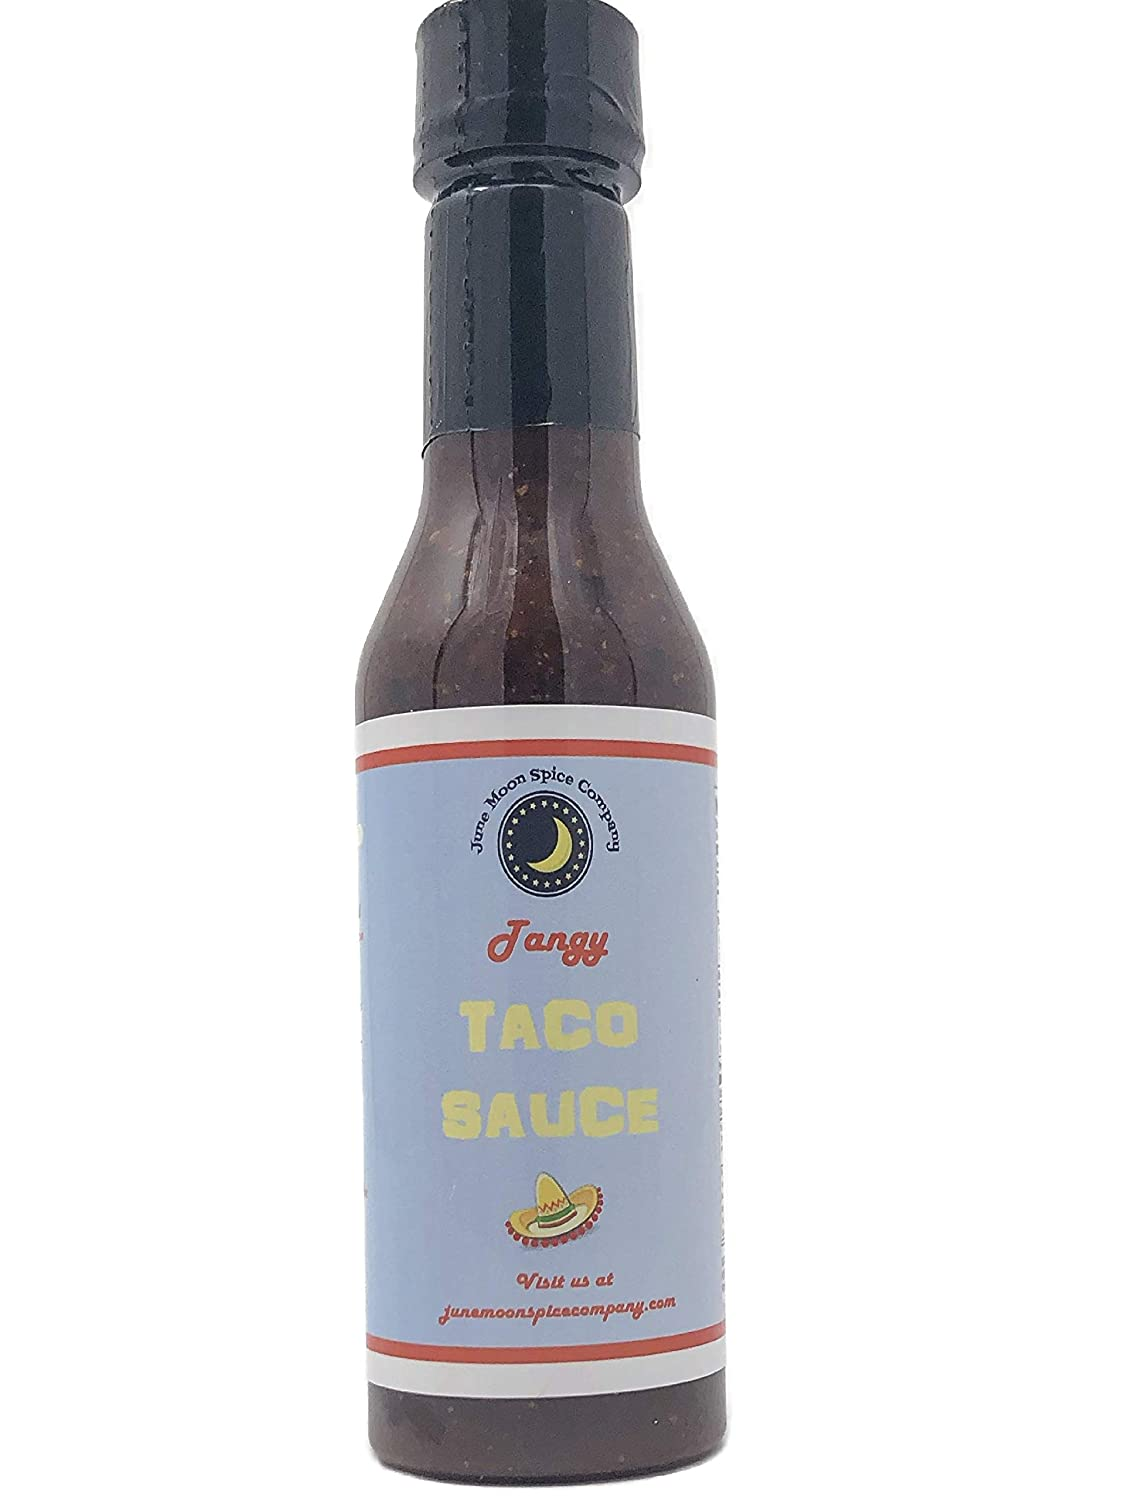 Premium | Tangy TACO SAUCE | Crafted in Small Batches with Farm Fresh Herbs for Premium Flavor and Zest